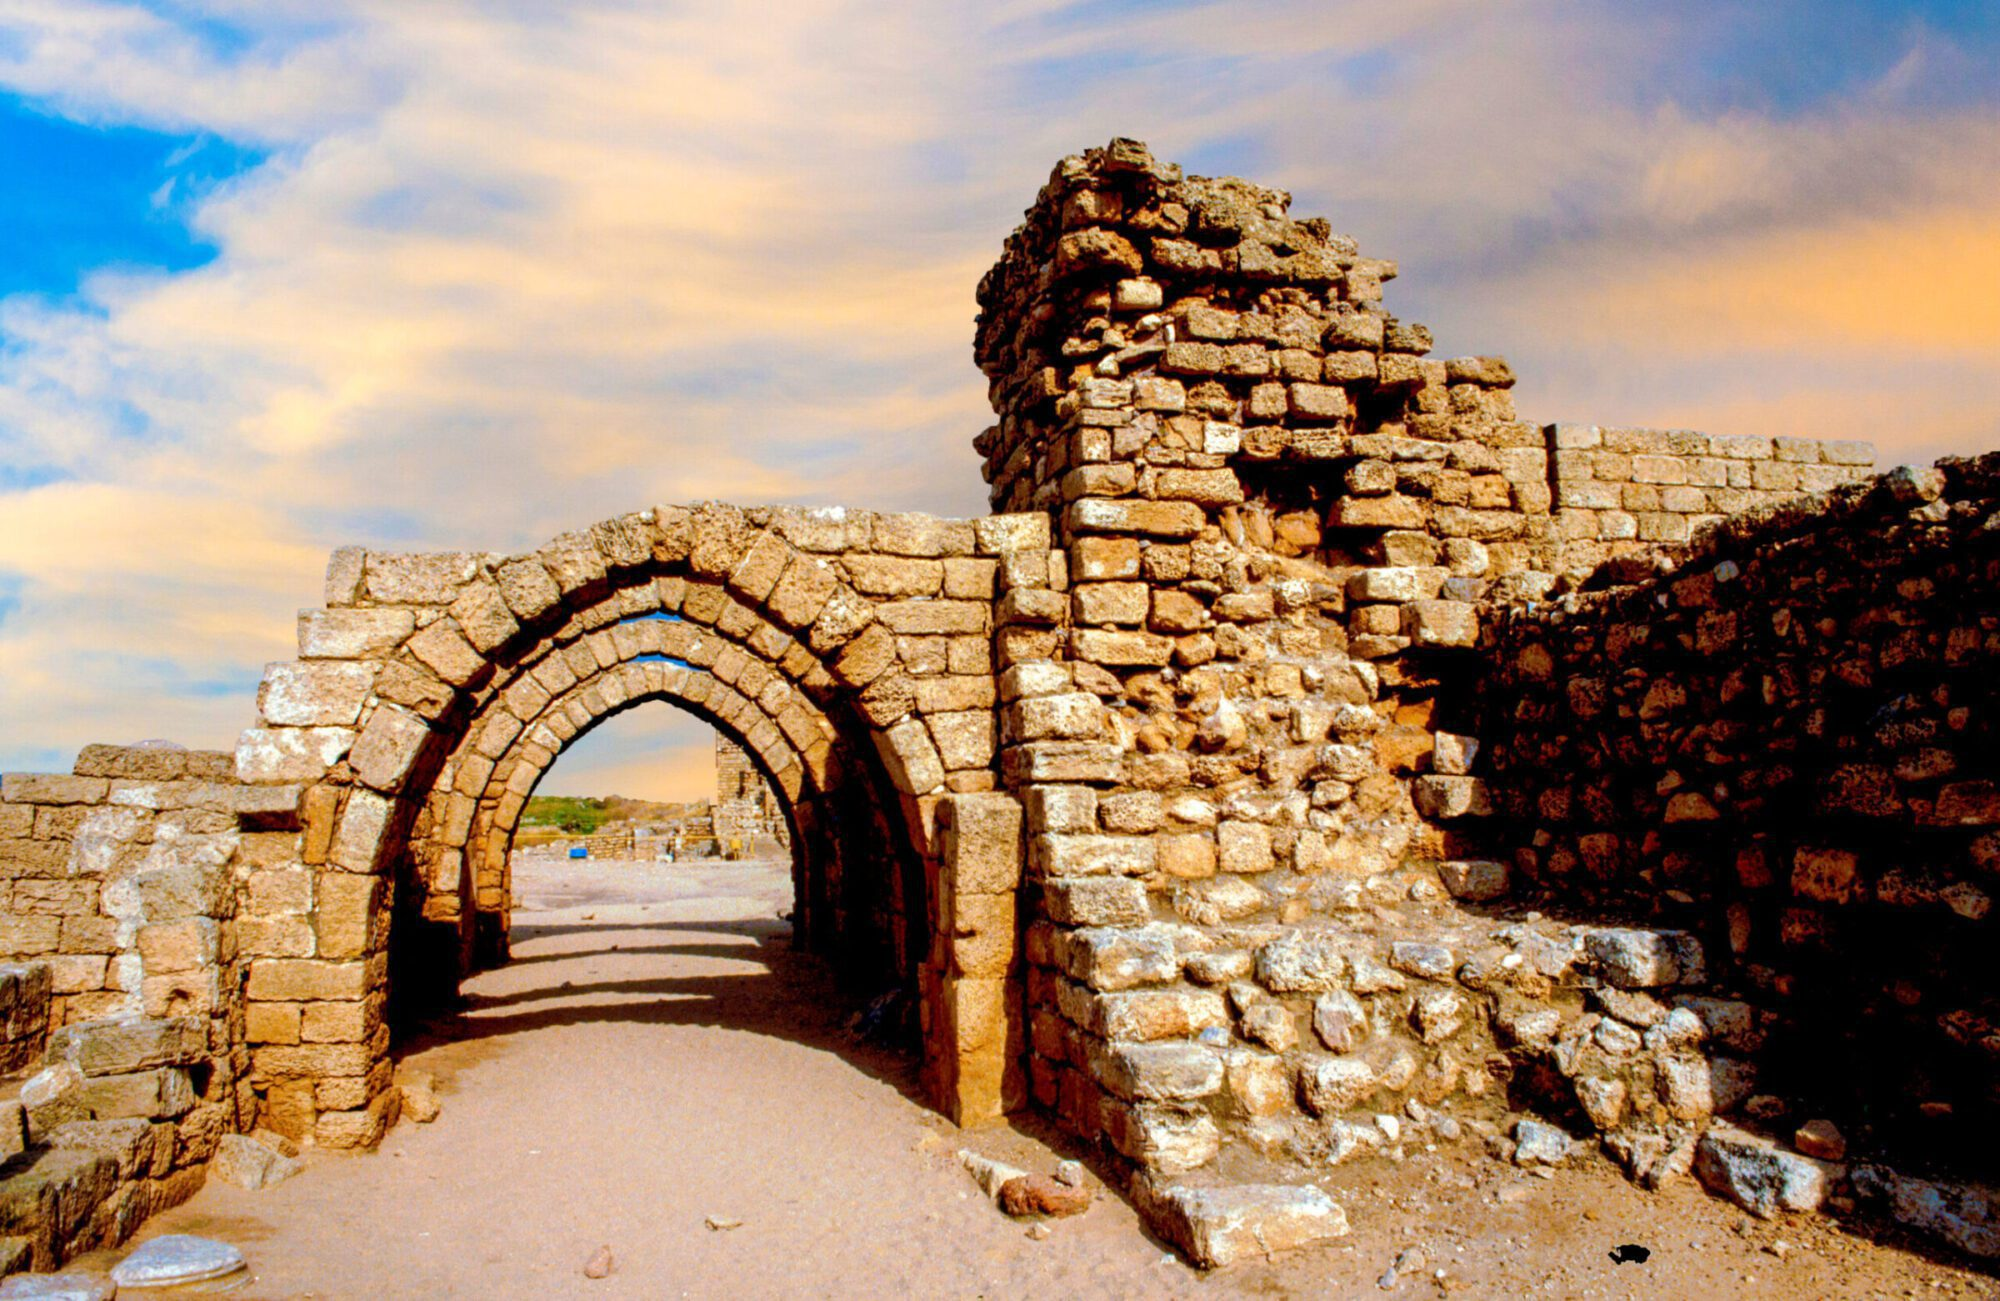 Israel Archaeological One Day Tours - Fortress Avdat